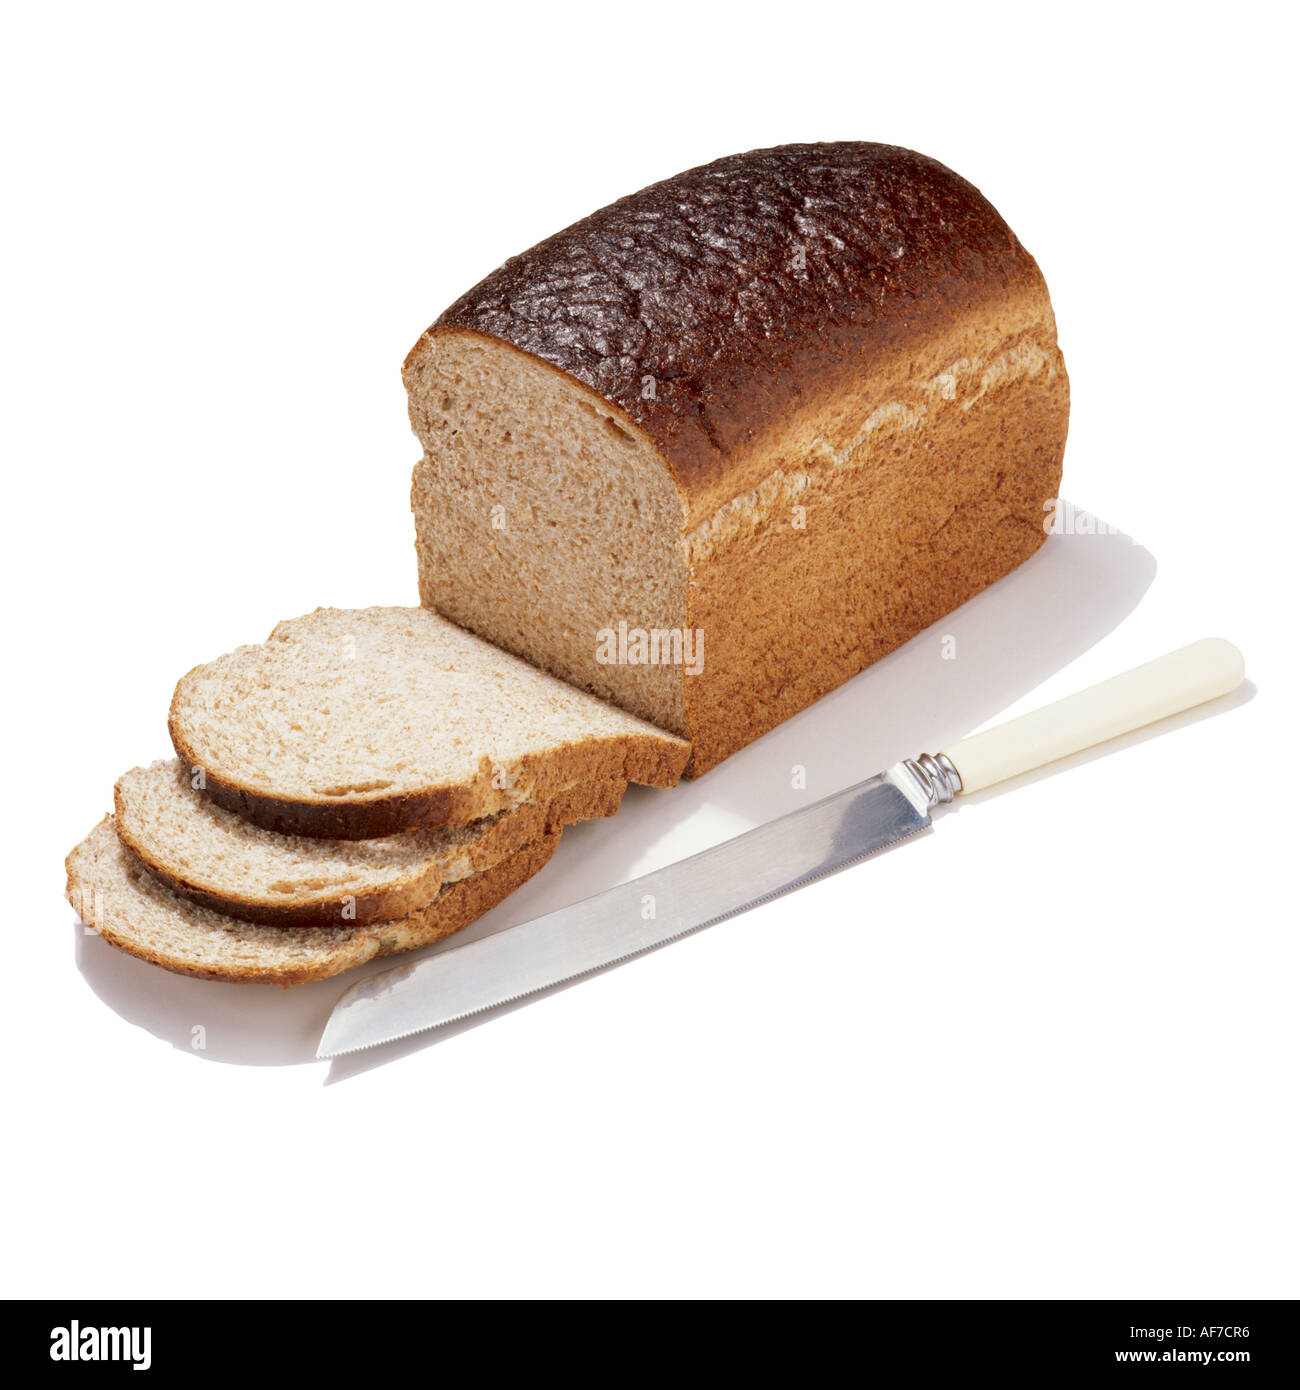 A loaf of bread and bread knife - Stock Image